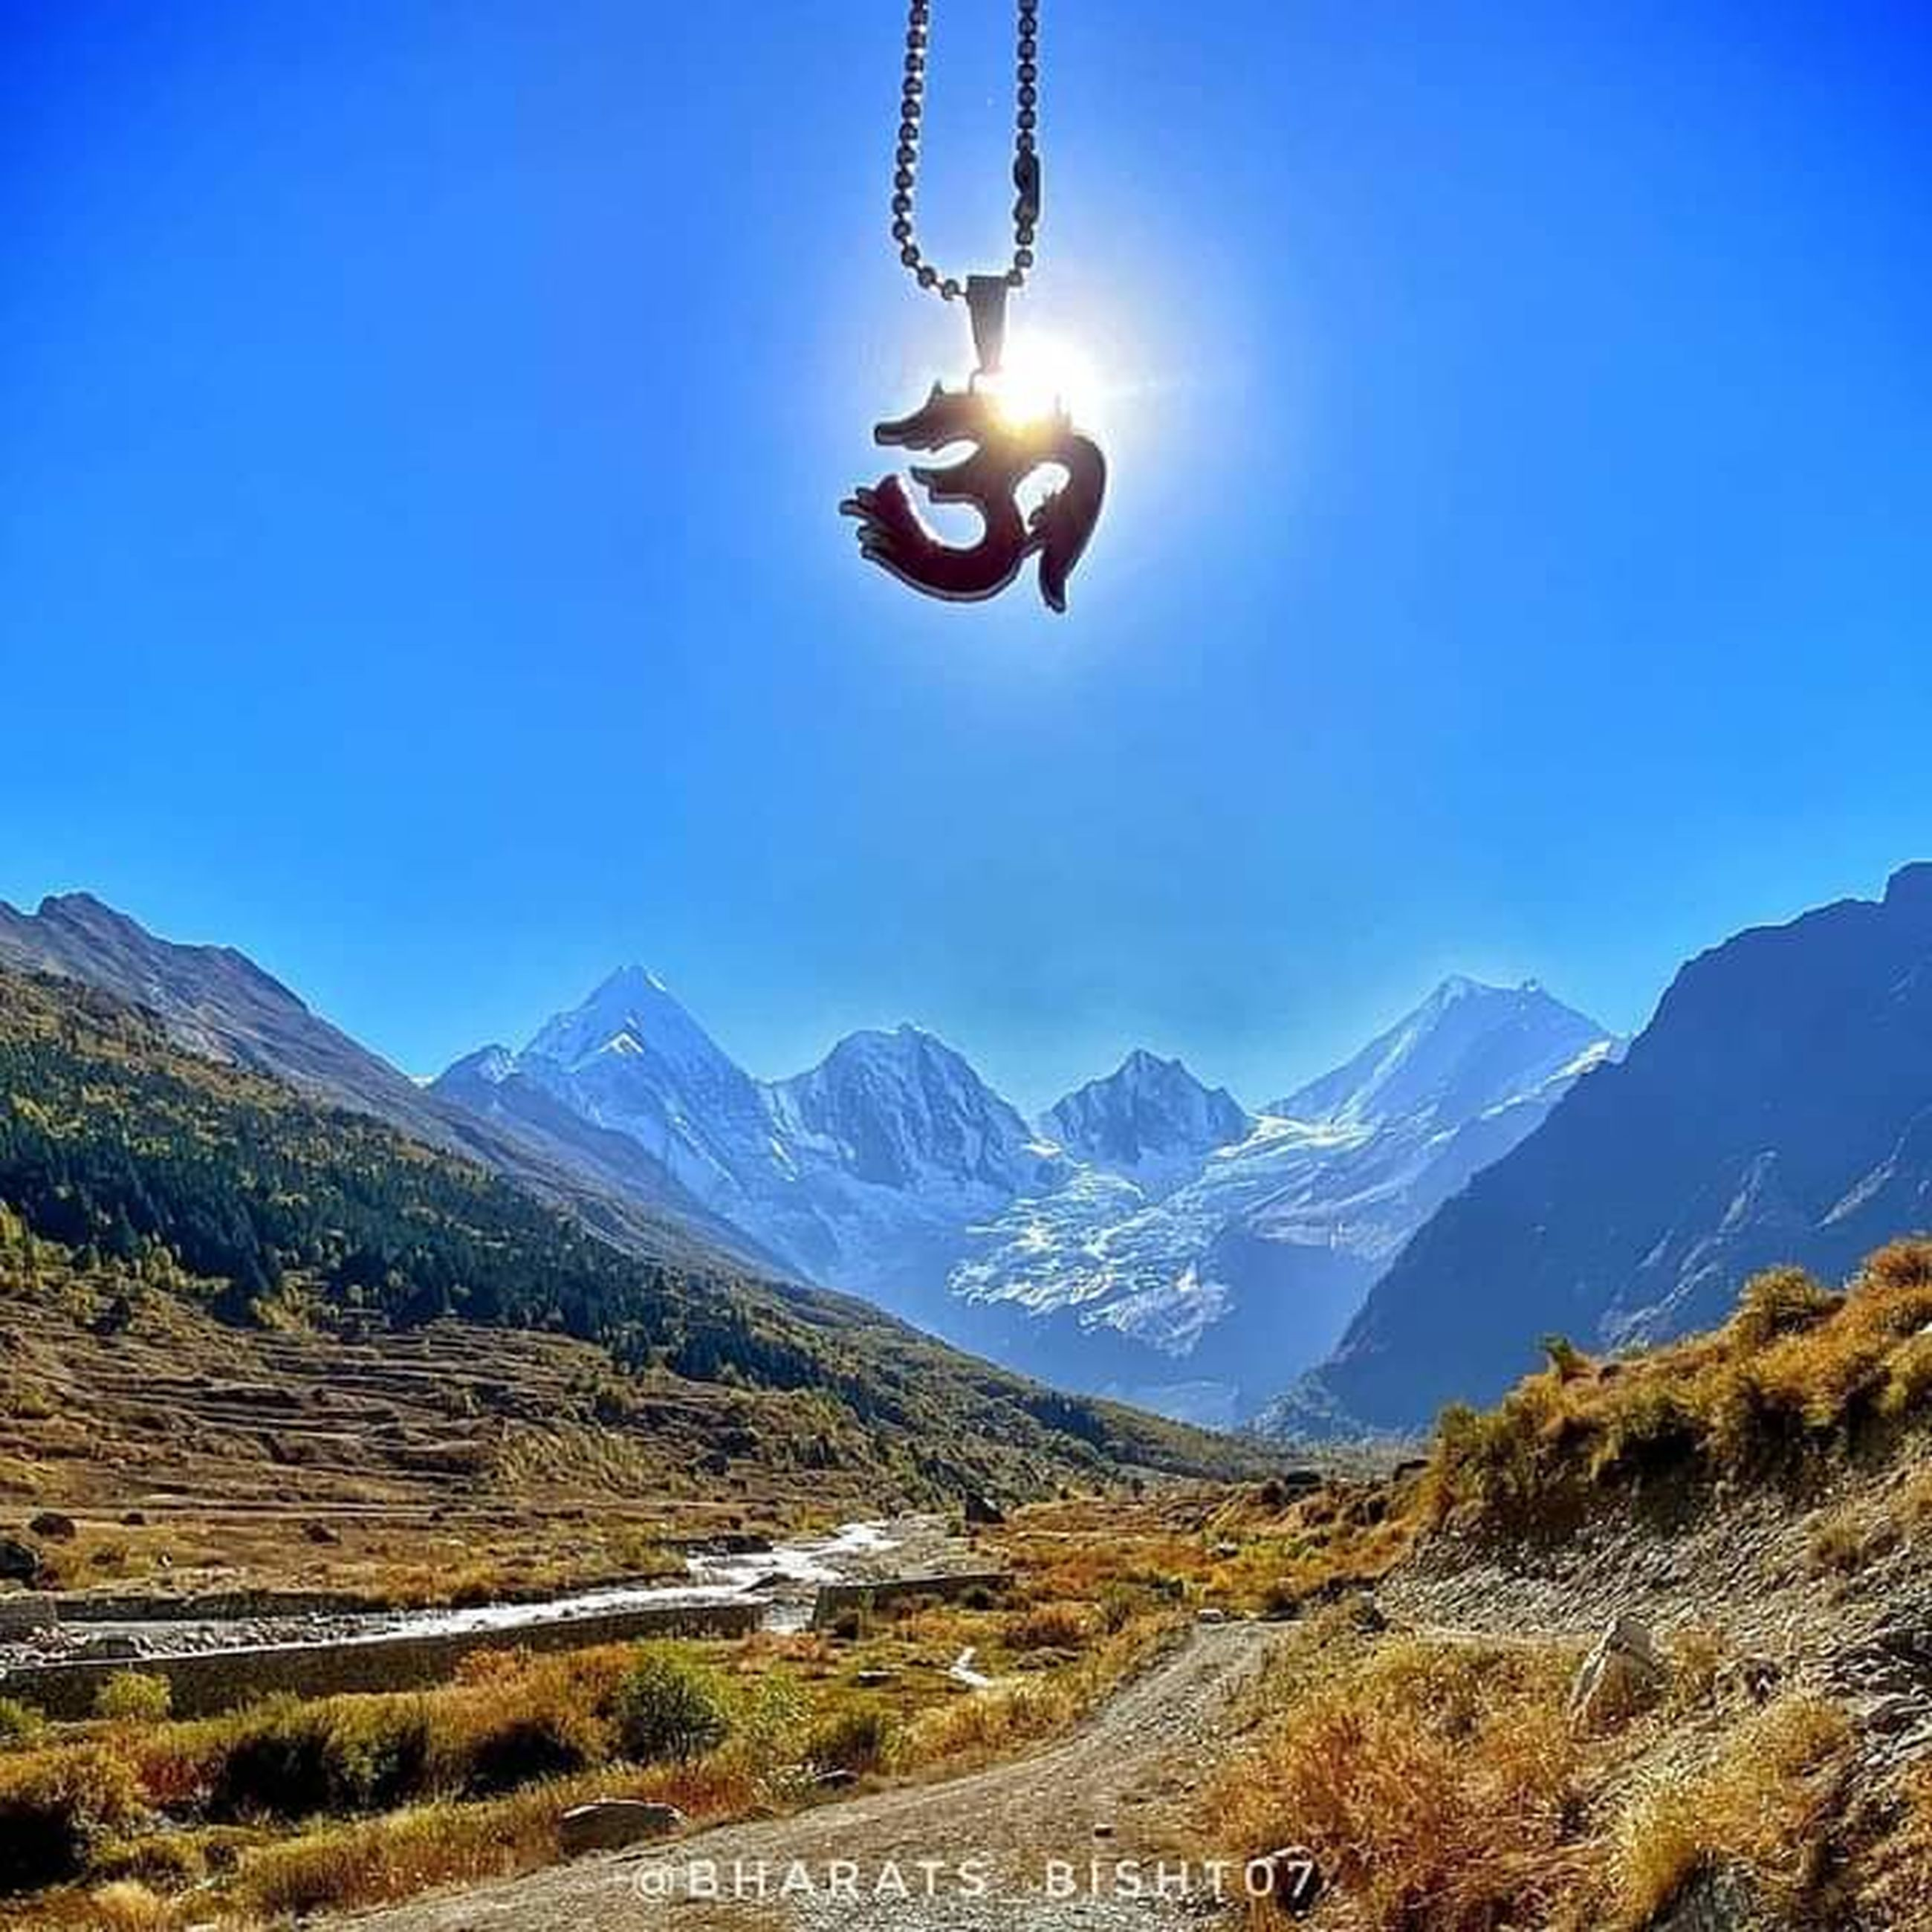 mountain, sky, nature, adventure, mountain range, mid-air, scenics - nature, landscape, environment, sports, leisure activity, one person, beauty in nature, activity, land, extreme sports, motion, blue, snow, hanging, transportation, outdoors, travel, day, joy, full length, jumping, sunlight